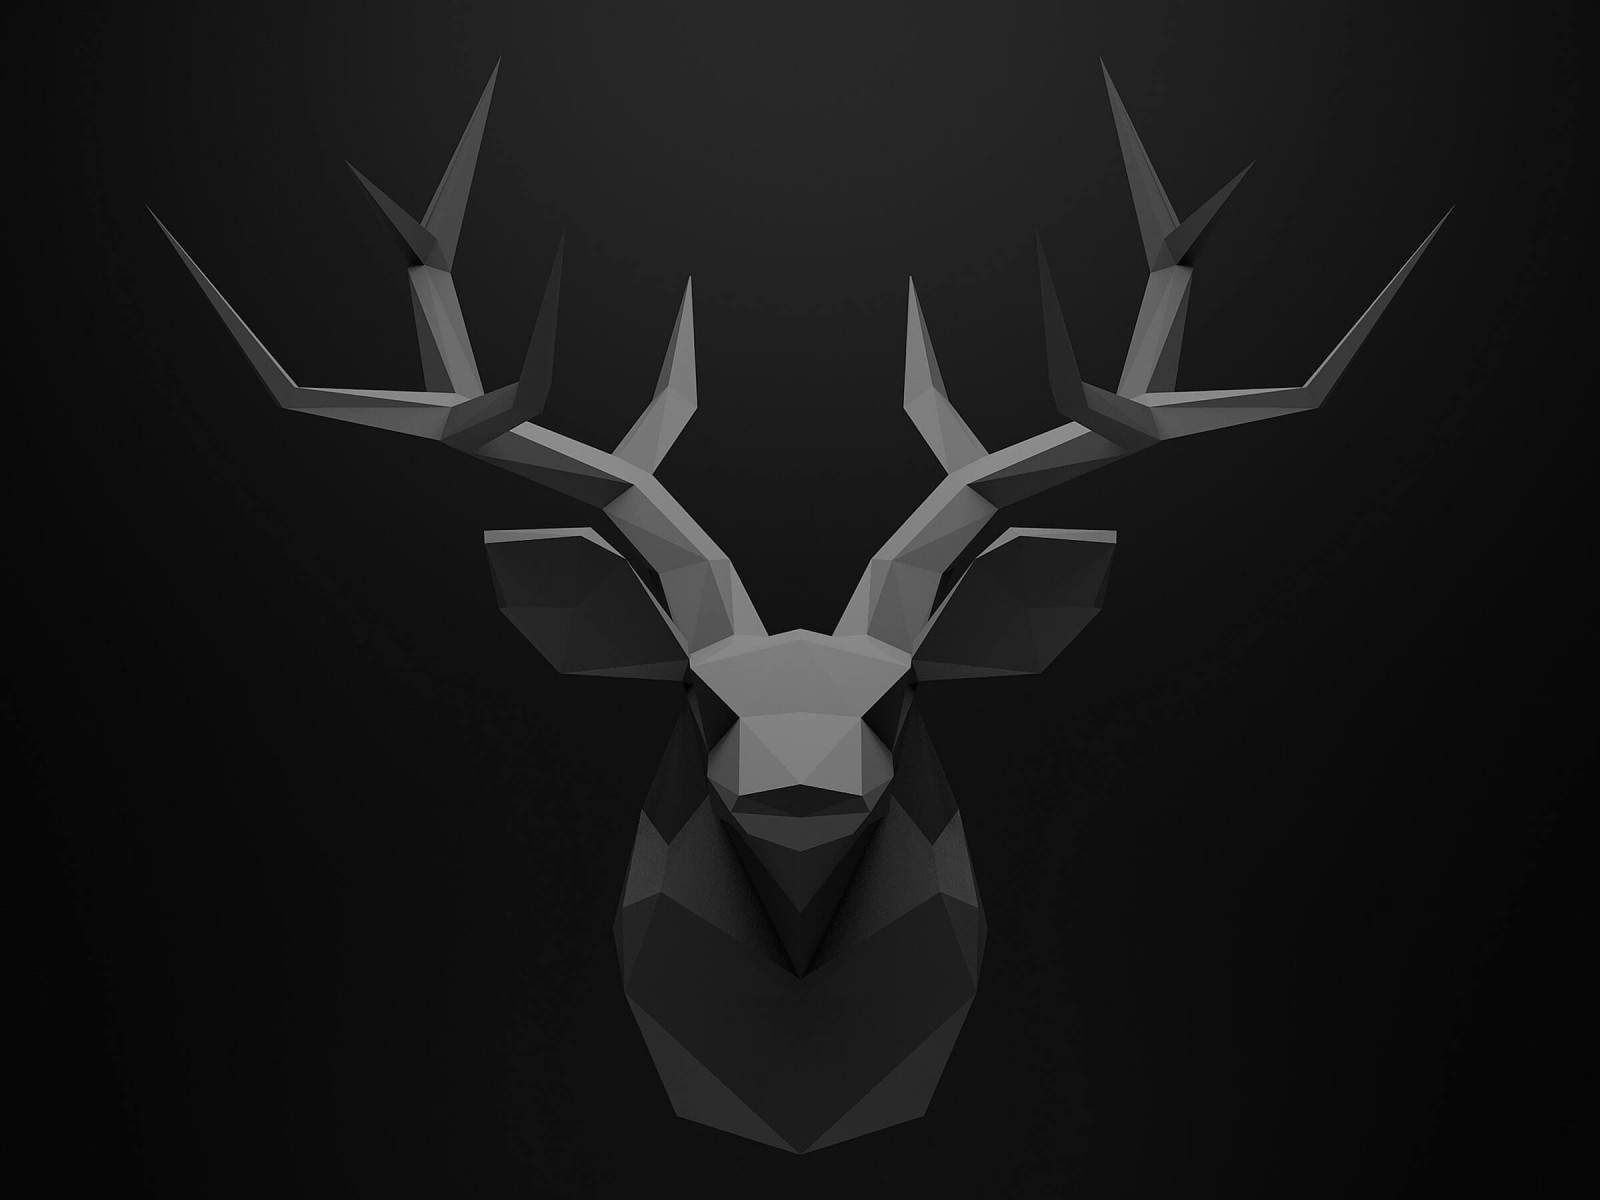 Low Poly Deer Head Wallpaper for Desktop 1600x1200